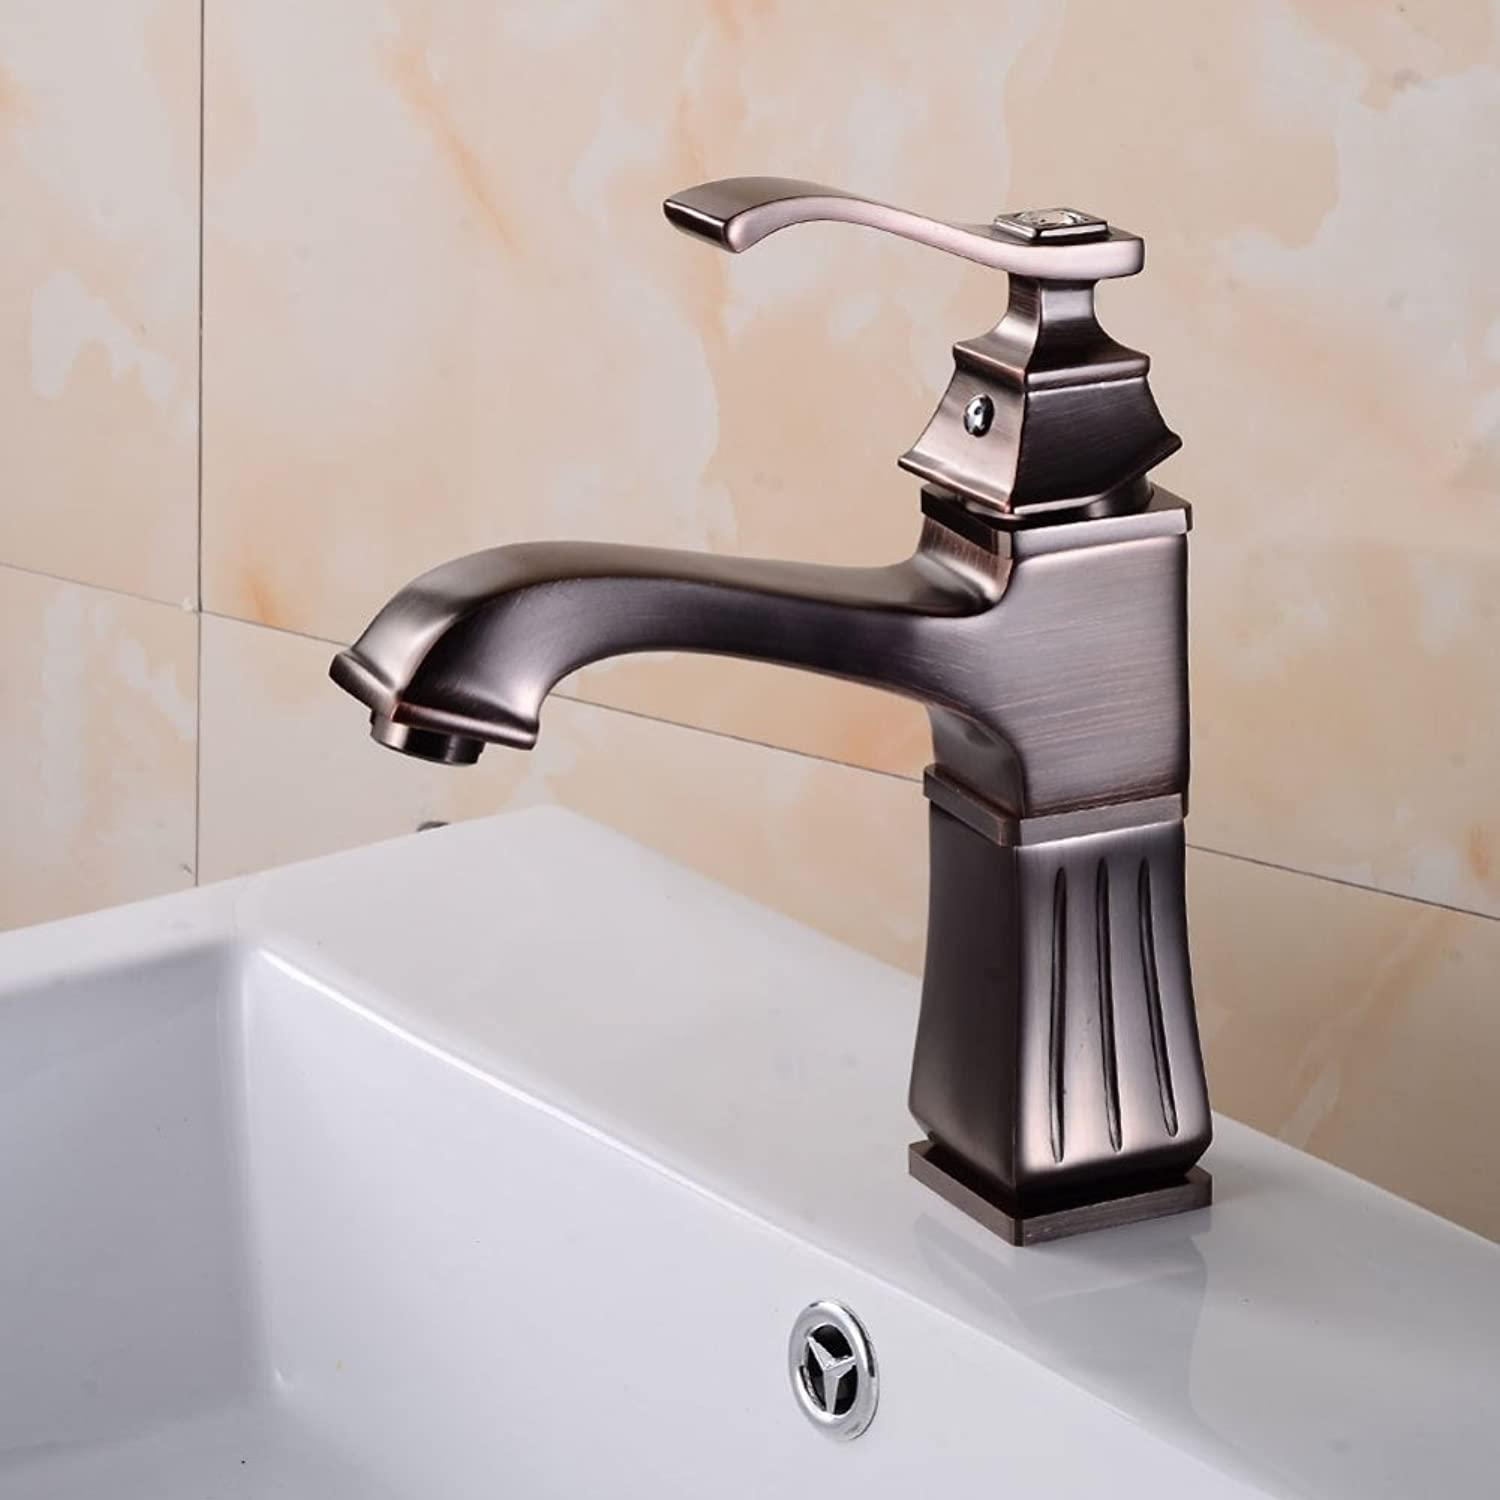 ZHHFaucet European redating Faucet Above Counter Basin Faucet Washbasin Faucet Retro Wash Basin Faucet Kitchen Faucet Copper Waterfall Faucet Hot and Cold Faucet Spring redary Faucet